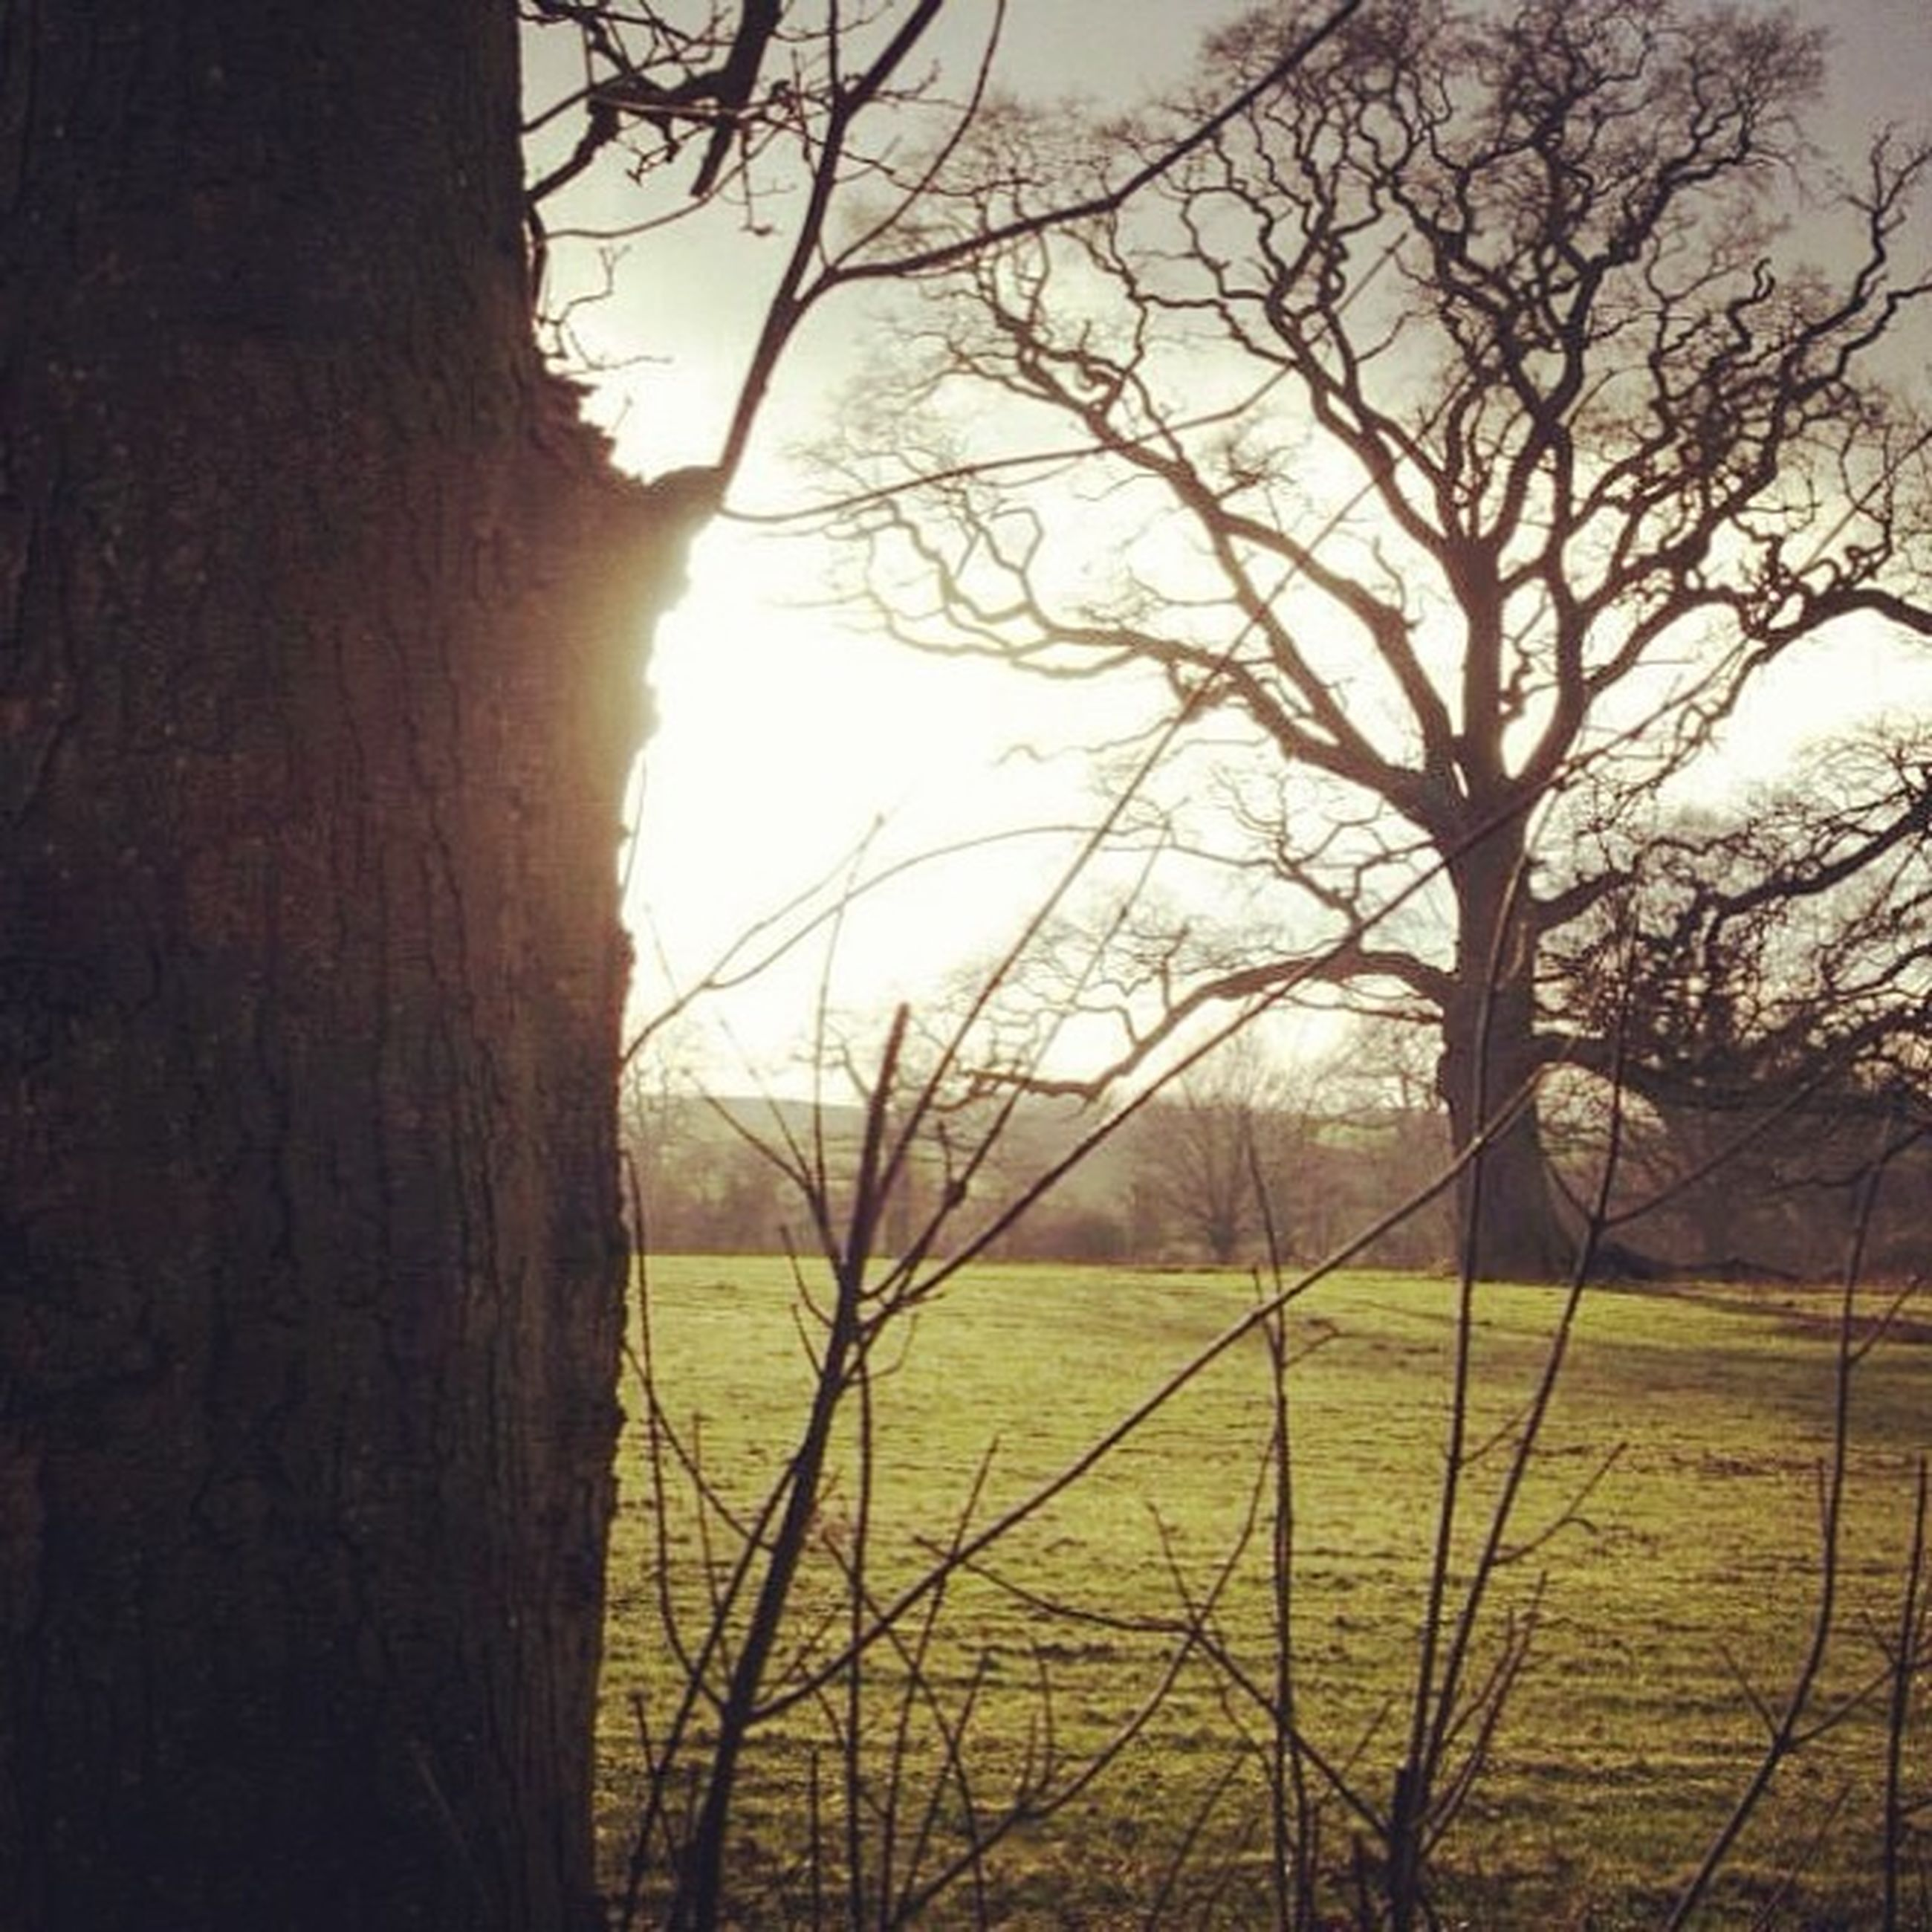 sunset, sun, tree, bare tree, tranquility, tranquil scene, branch, landscape, sky, scenics, field, nature, beauty in nature, silhouette, sunlight, grass, tree trunk, growth, idyllic, lens flare